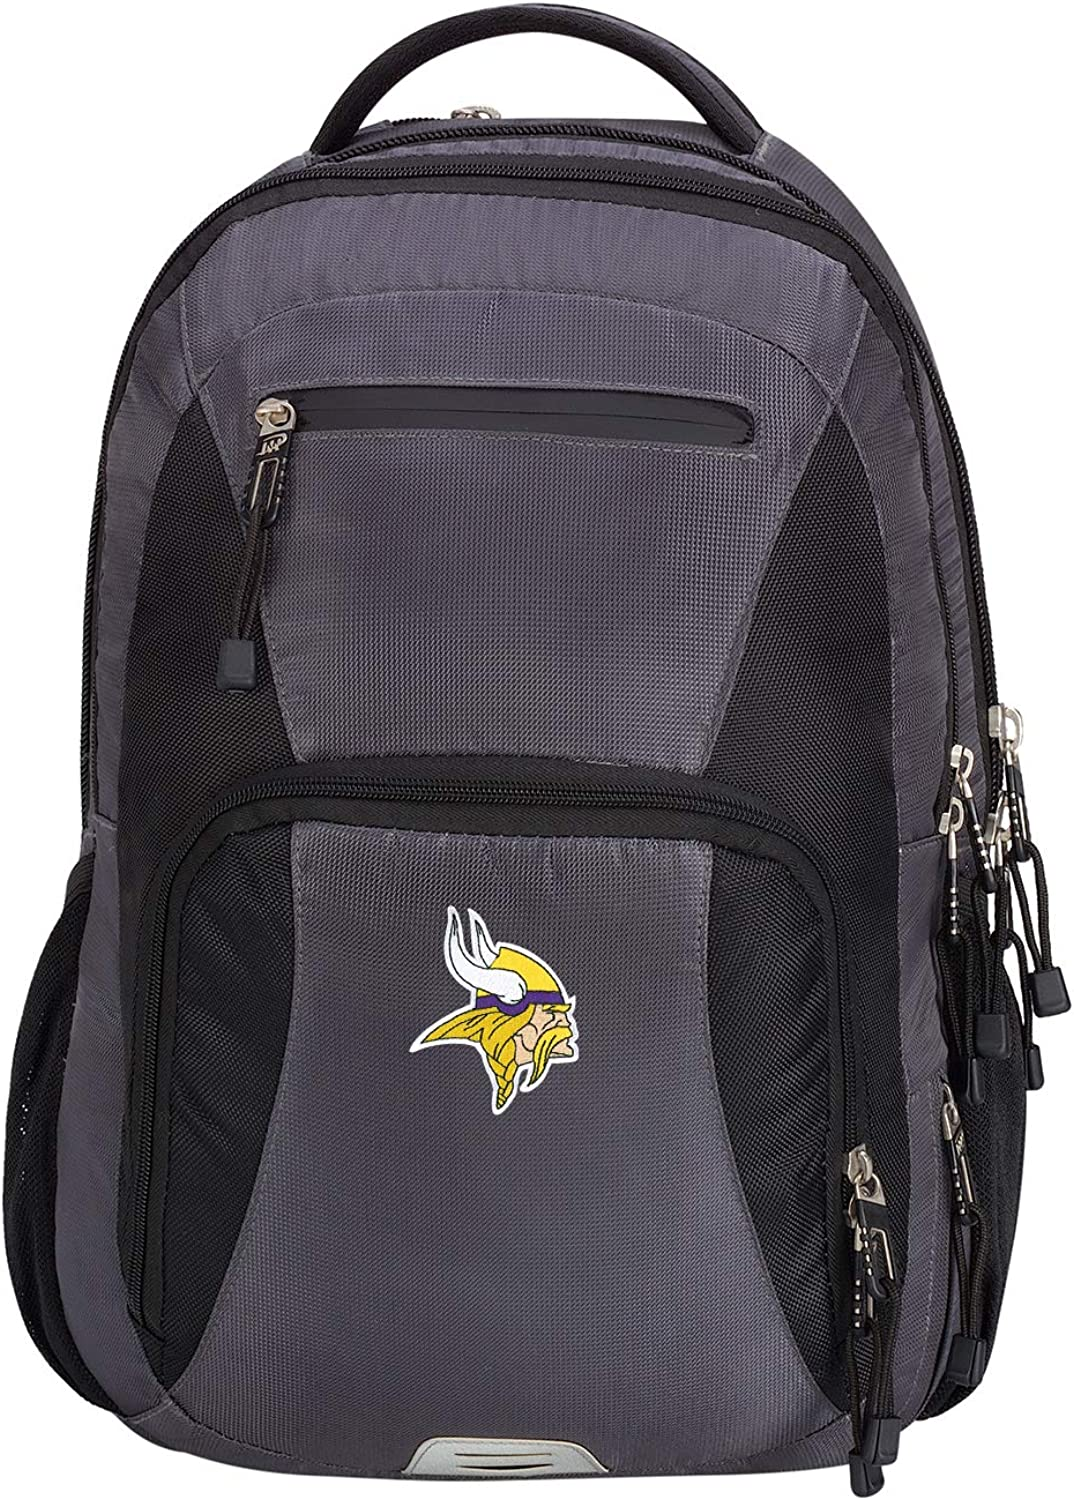 The Northwest Company Officially Turbine Inventory cleanup selling sale Japan's largest assortment Backpack NFL Licensed